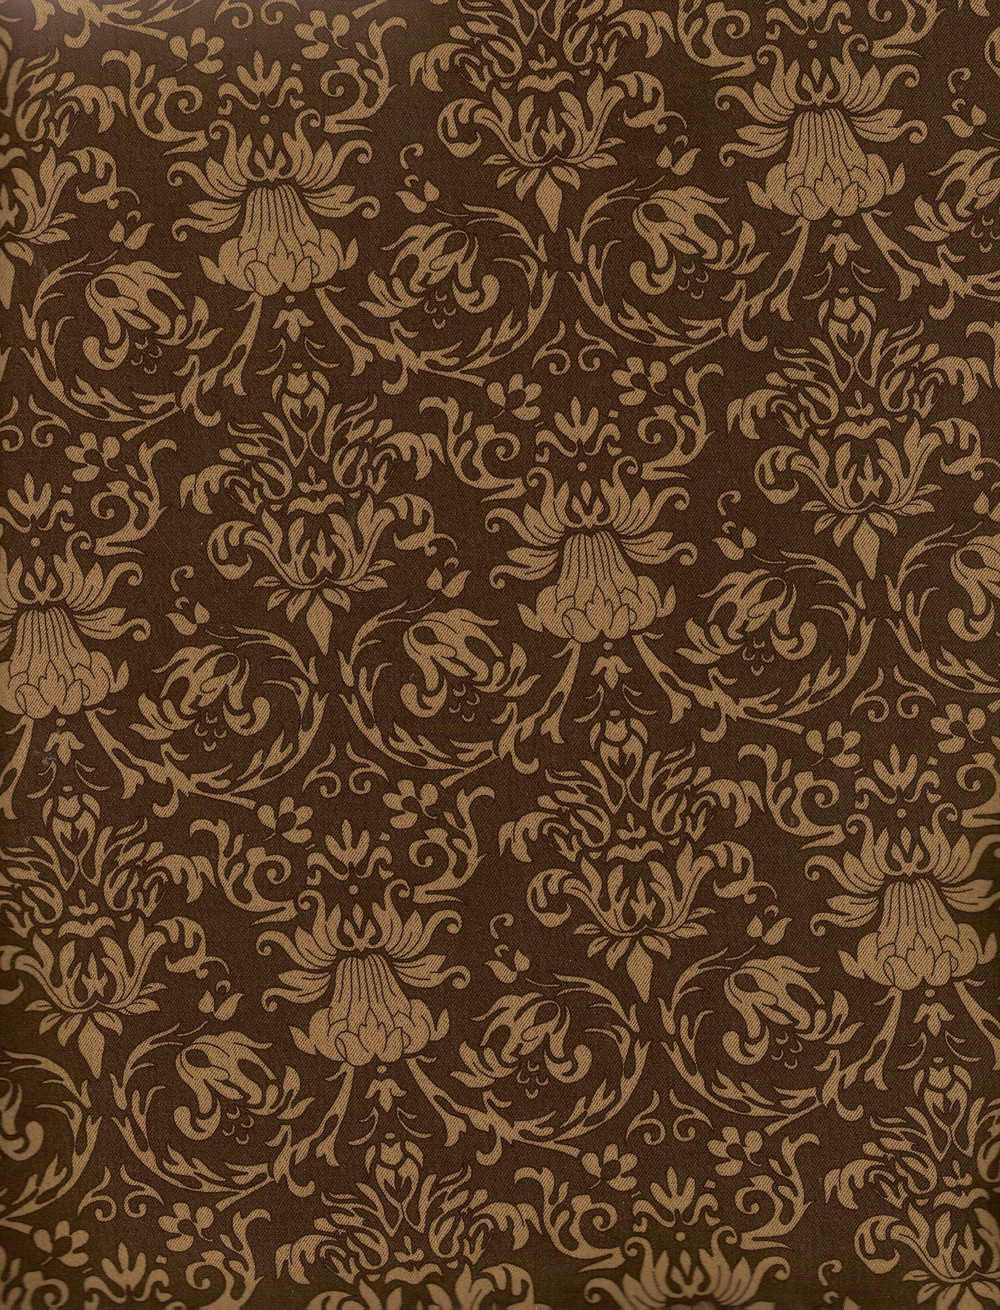 Art_Nouveau_Pattern_Texture_by_Enchantedgal_Stock.jpg